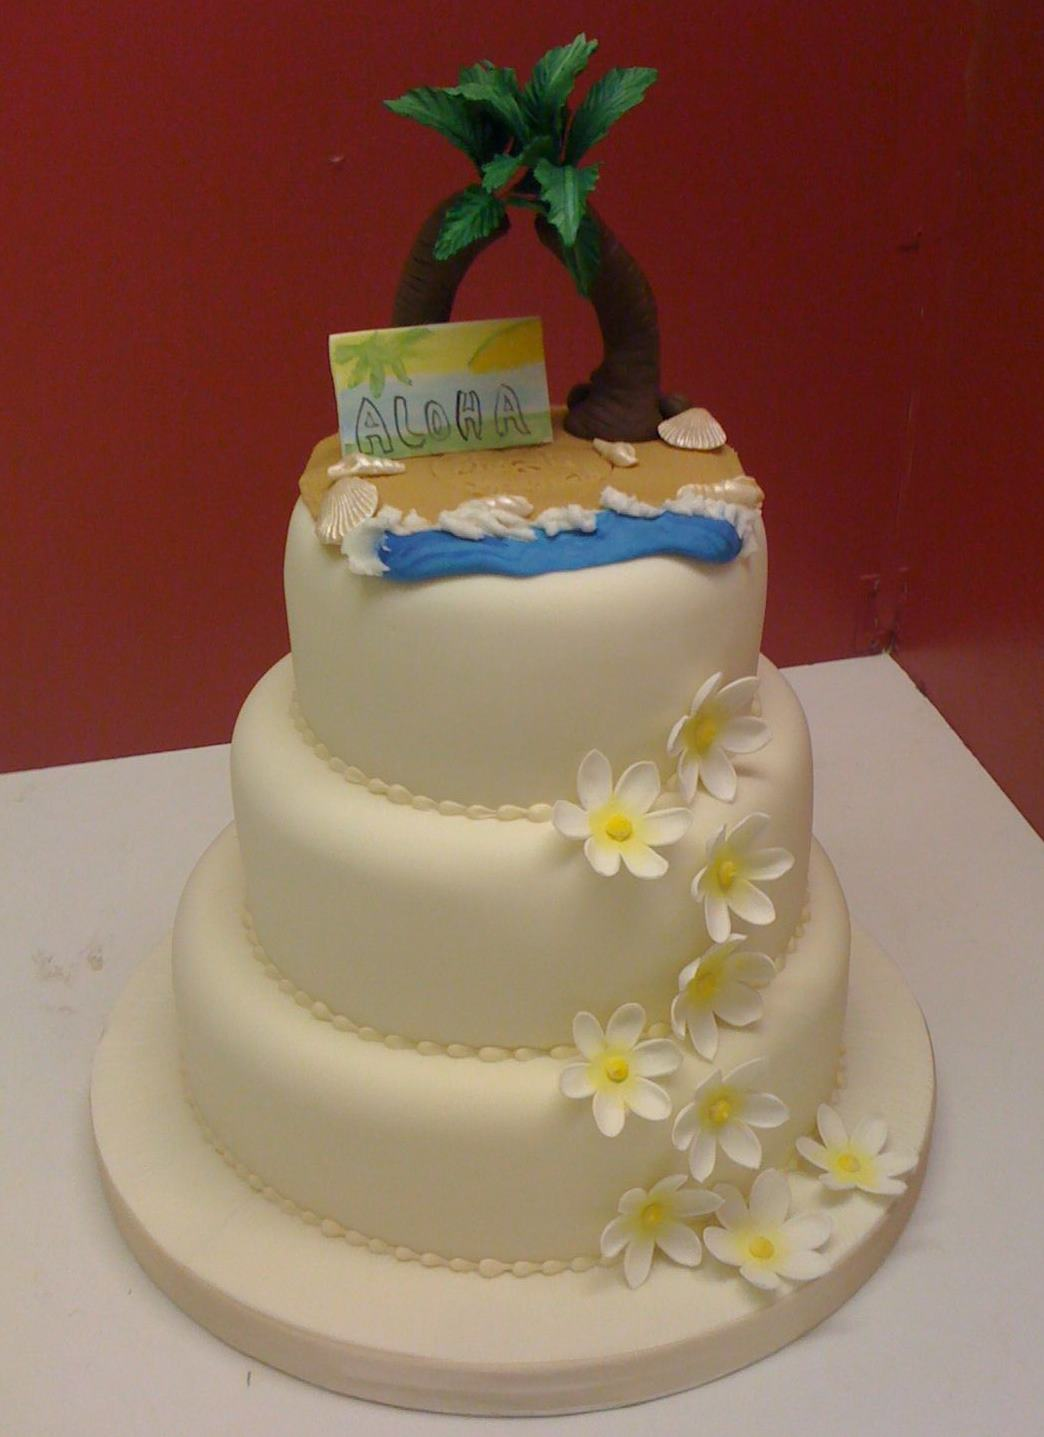 Novelty wedding cakes Jennys Cake Blog Wedding cakes and